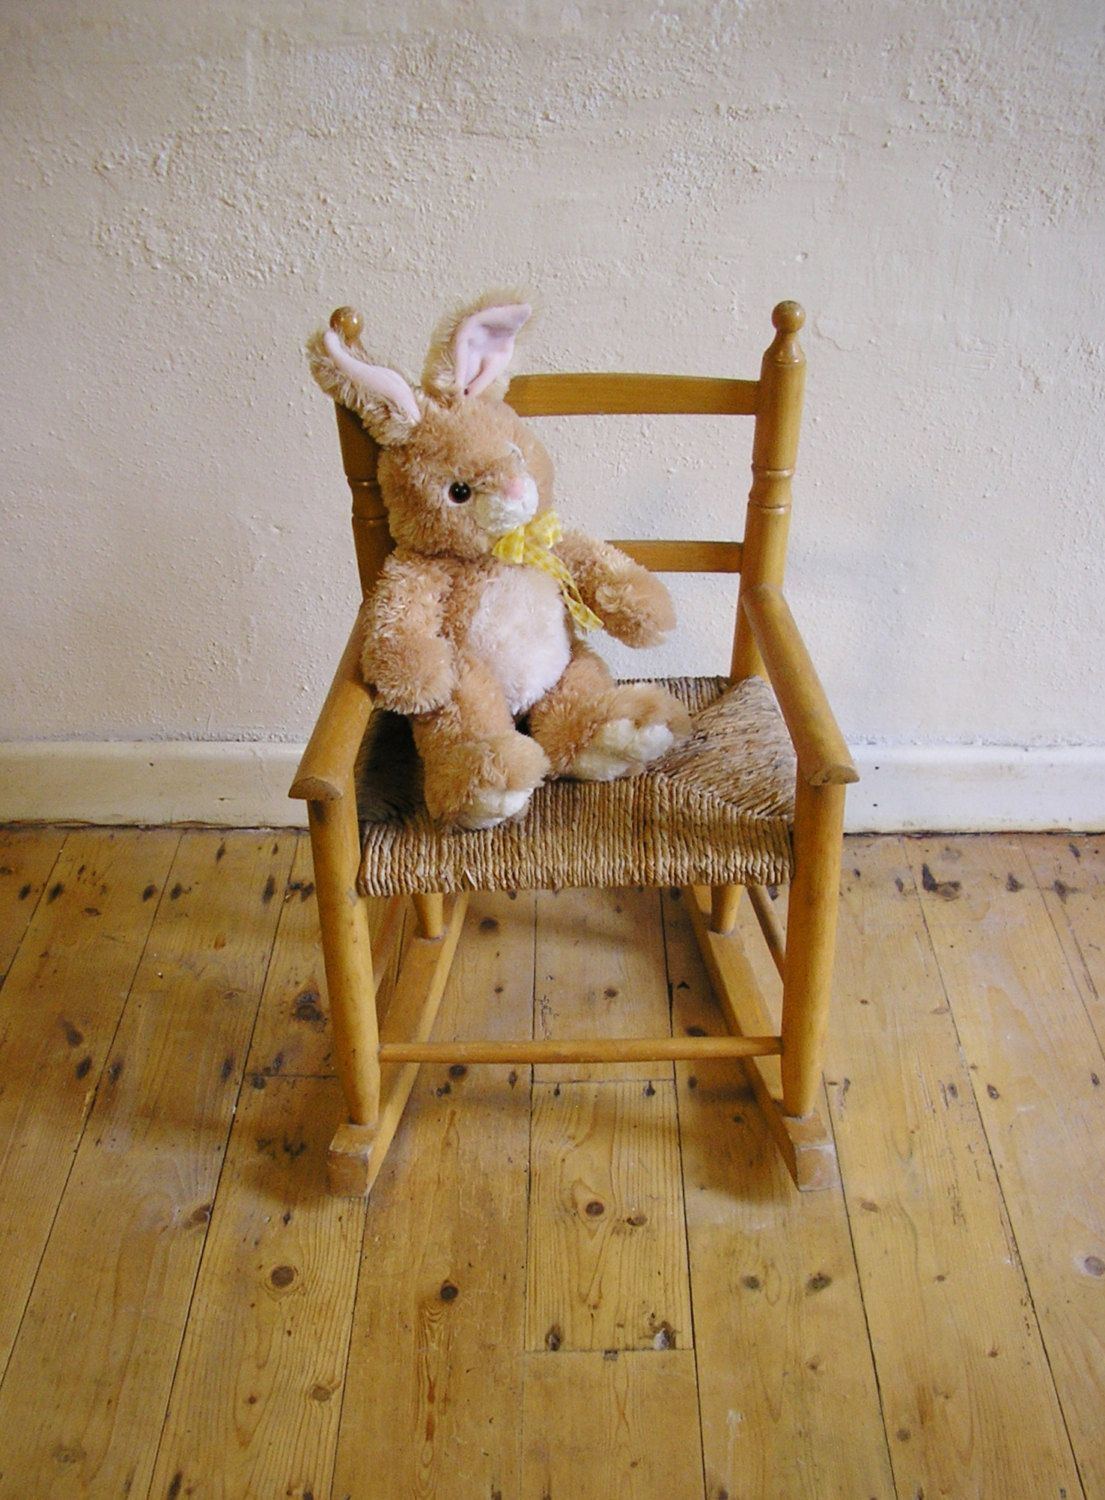 Vintage Childrenu0027s Rocking Chair Wicker Woven Seat Wood Wooden Chair  Nursery Playroom Kidu0027s Furniture Rustic Country